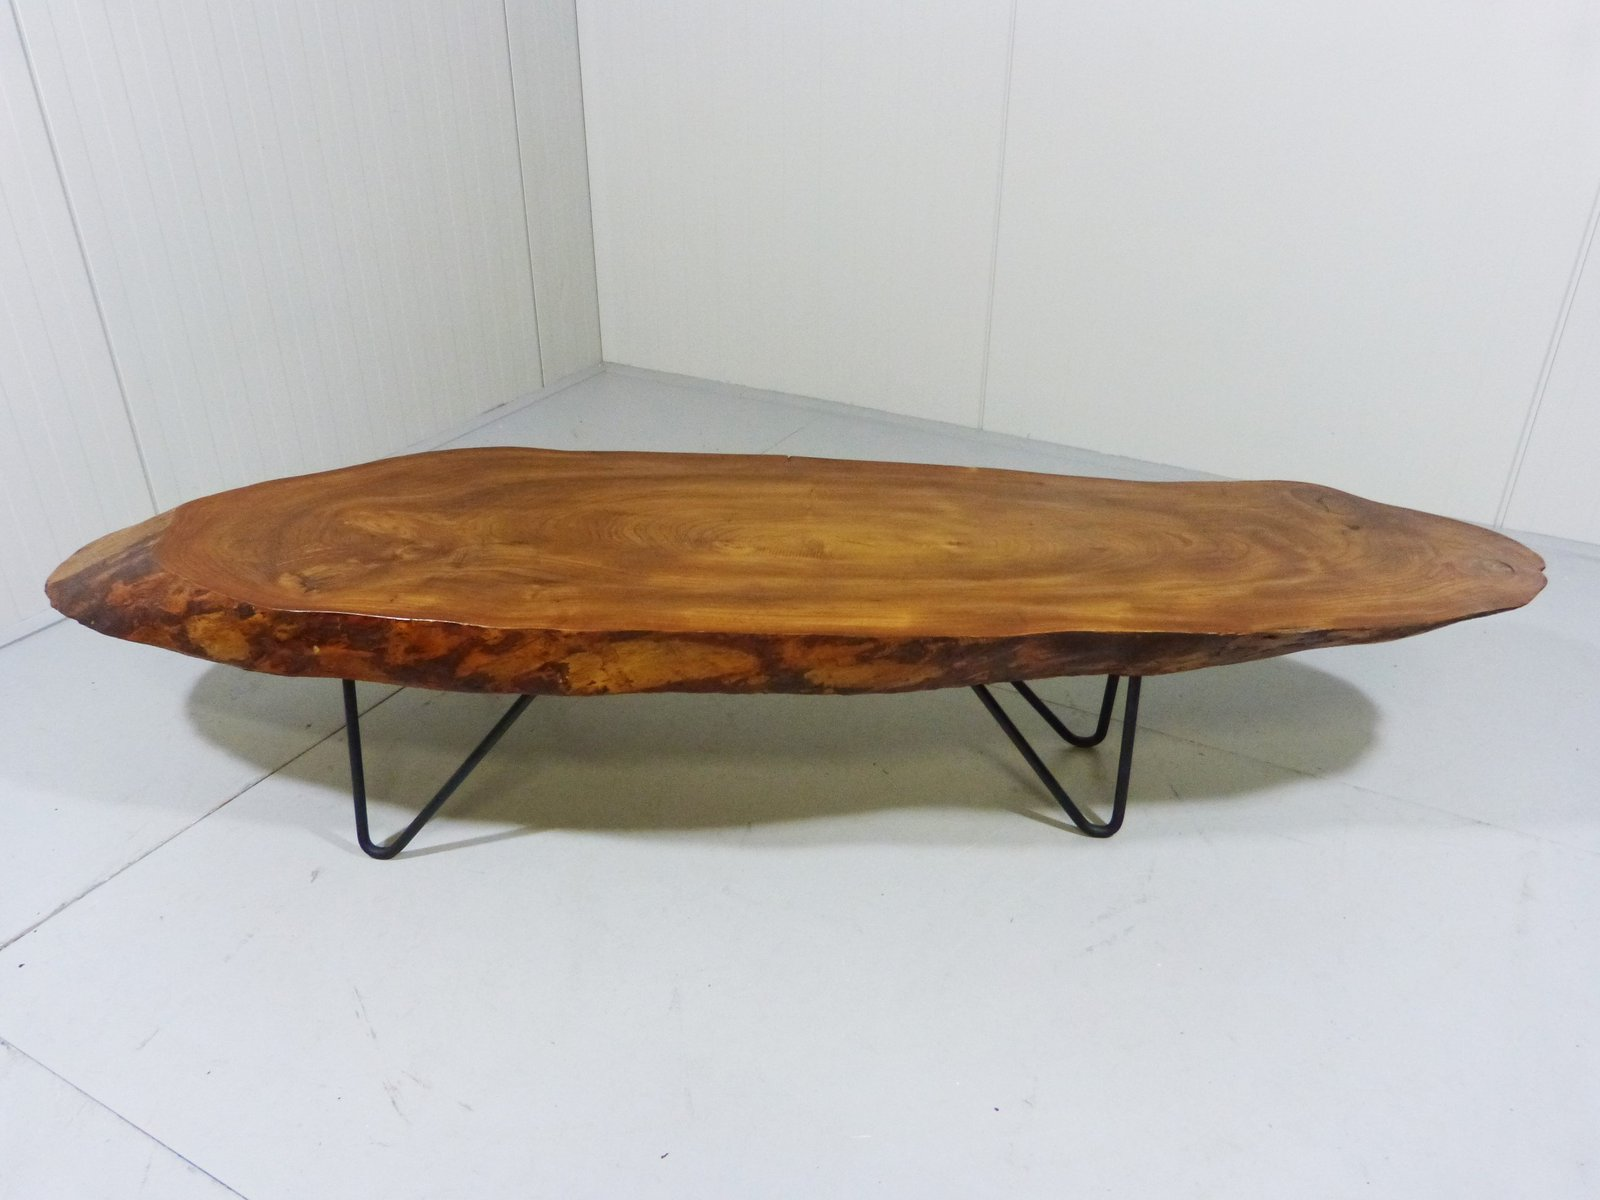 Table basse vintage tronc d 39 arbre avec pieds en epingle en for Pied de table en anglais